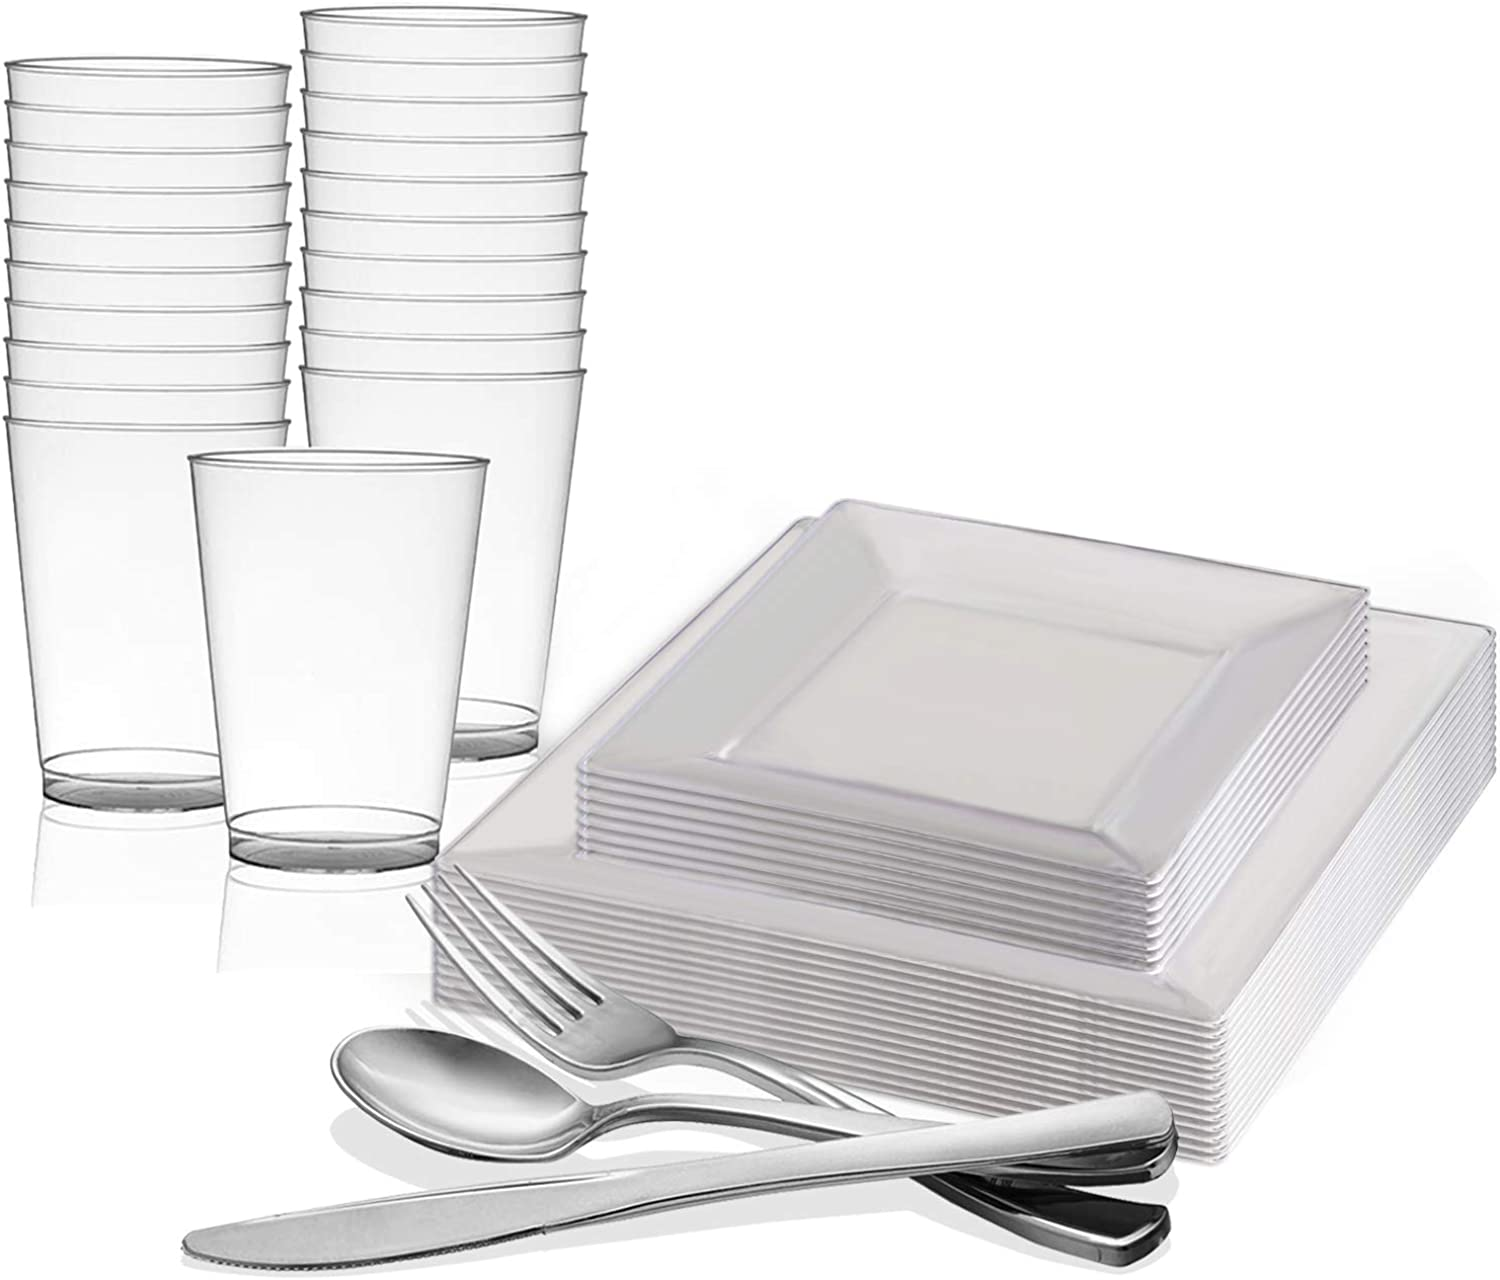 Disposable Plastic Dinnerware Set for 60 Guests - Includes Fancy Square Clear Dinner Plates, Dessert Salad Plates, Silverware Set Silver Cutlery & Cups For Wedding, Birthday Party & Other Occasions